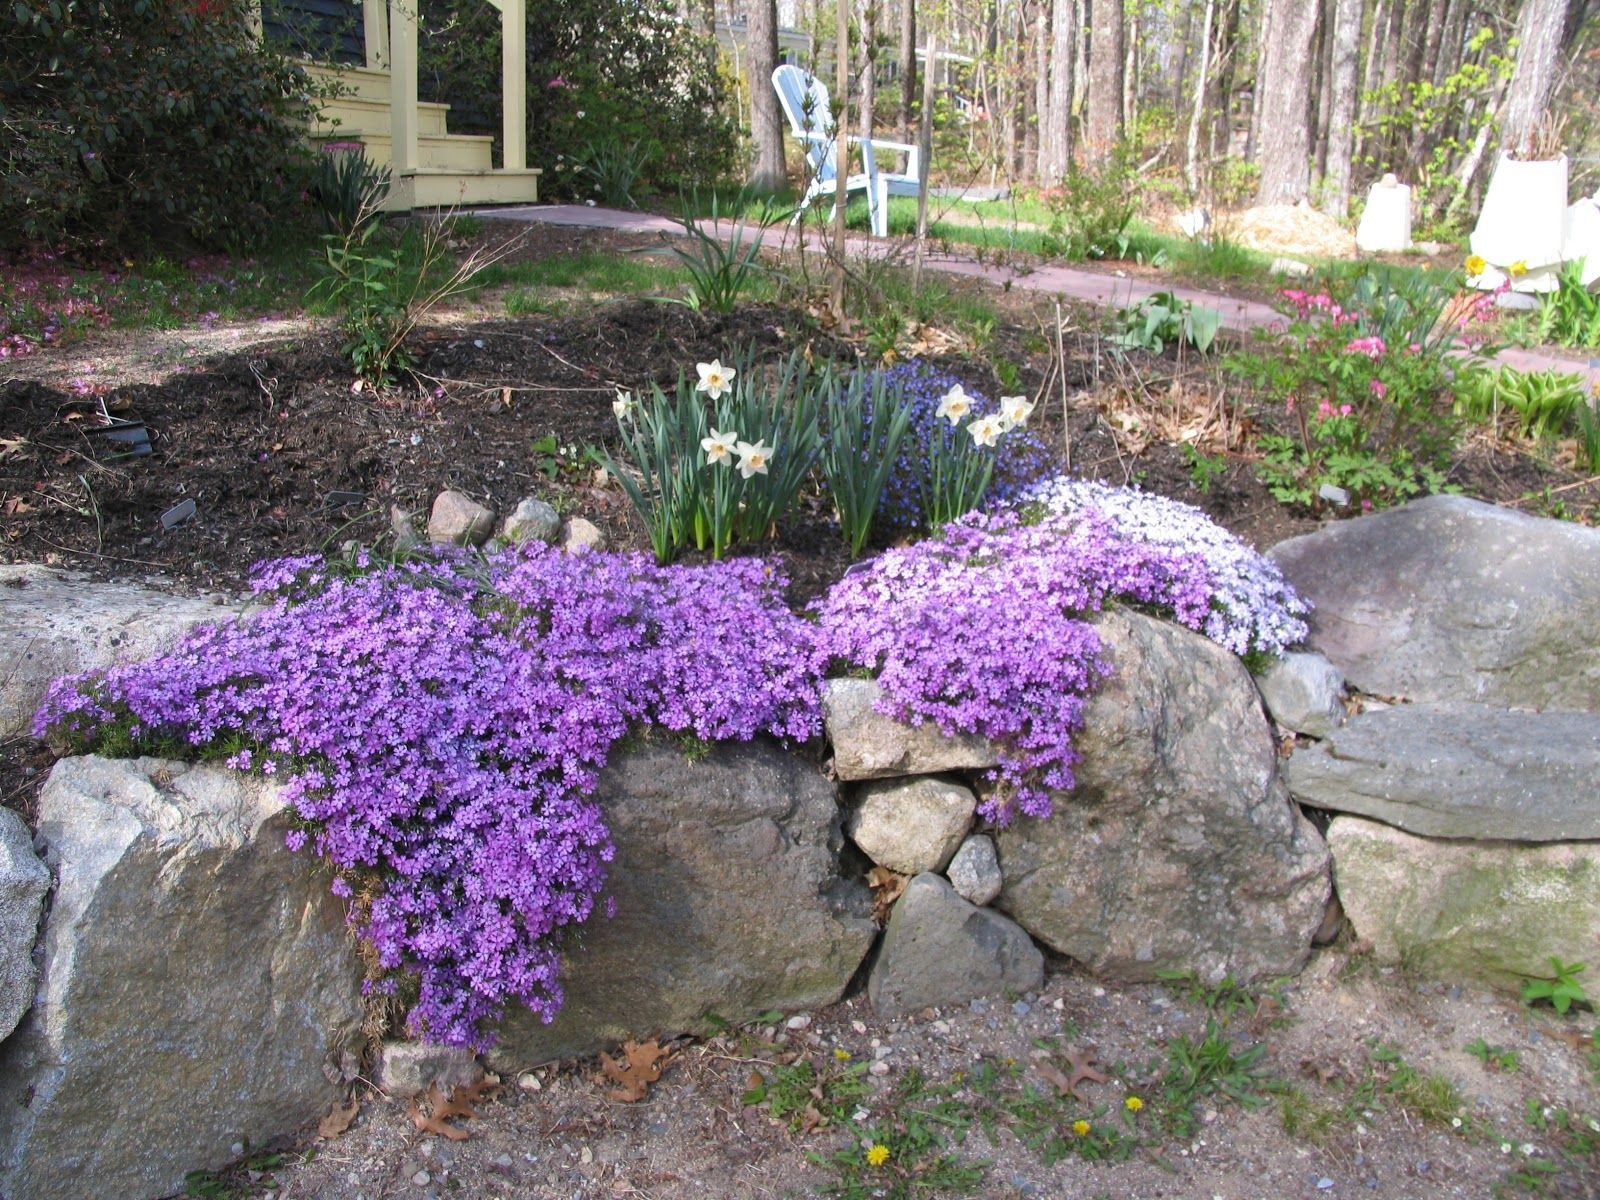 Creeping Phlox Sun ish The Creeping Phlox grows about 4 inches tall stays green all year in mild climates and gives masses of color in early spring